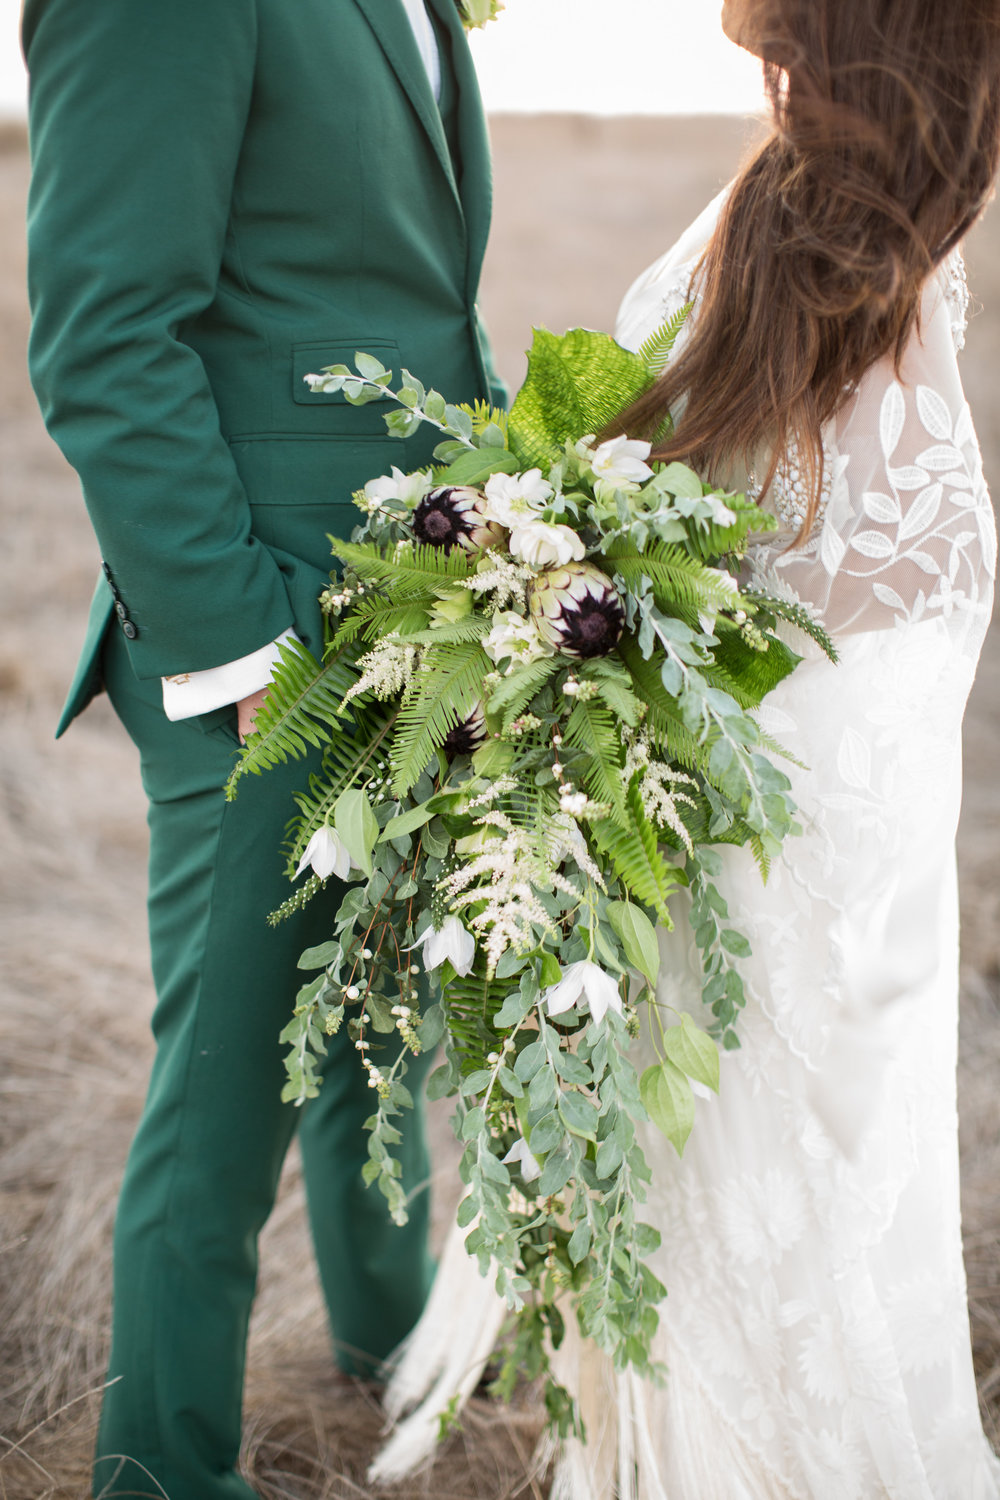 santa-barbara-elopement-elope-wedding-pop-up-coordinator-day-of-event-planning-planner-ellwood-bluff-eucalyptus-grove-rustic-ocean-view-front-hop-green-suit (1 (27).jpg